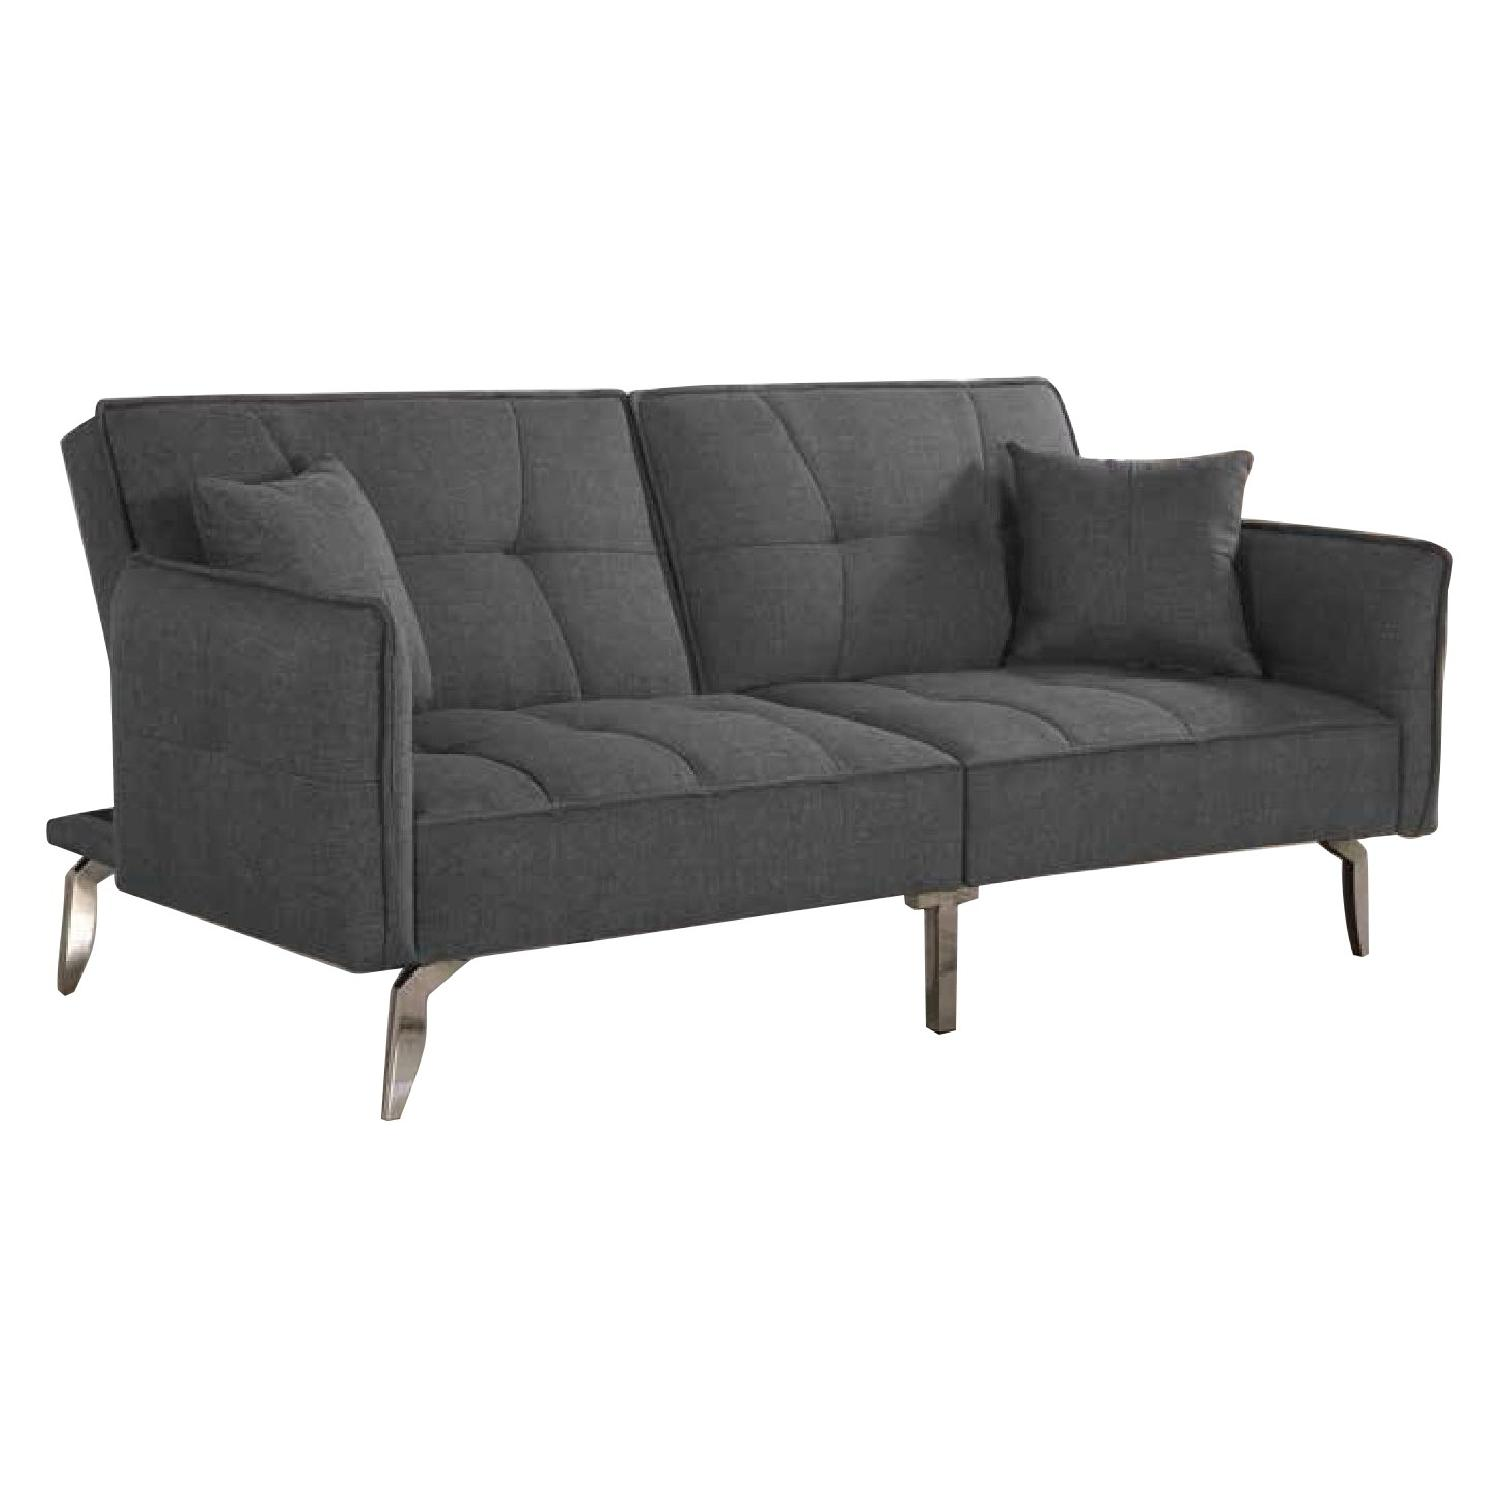 Modern Sofabed in Dark Grey Fabric/Chrome Legs